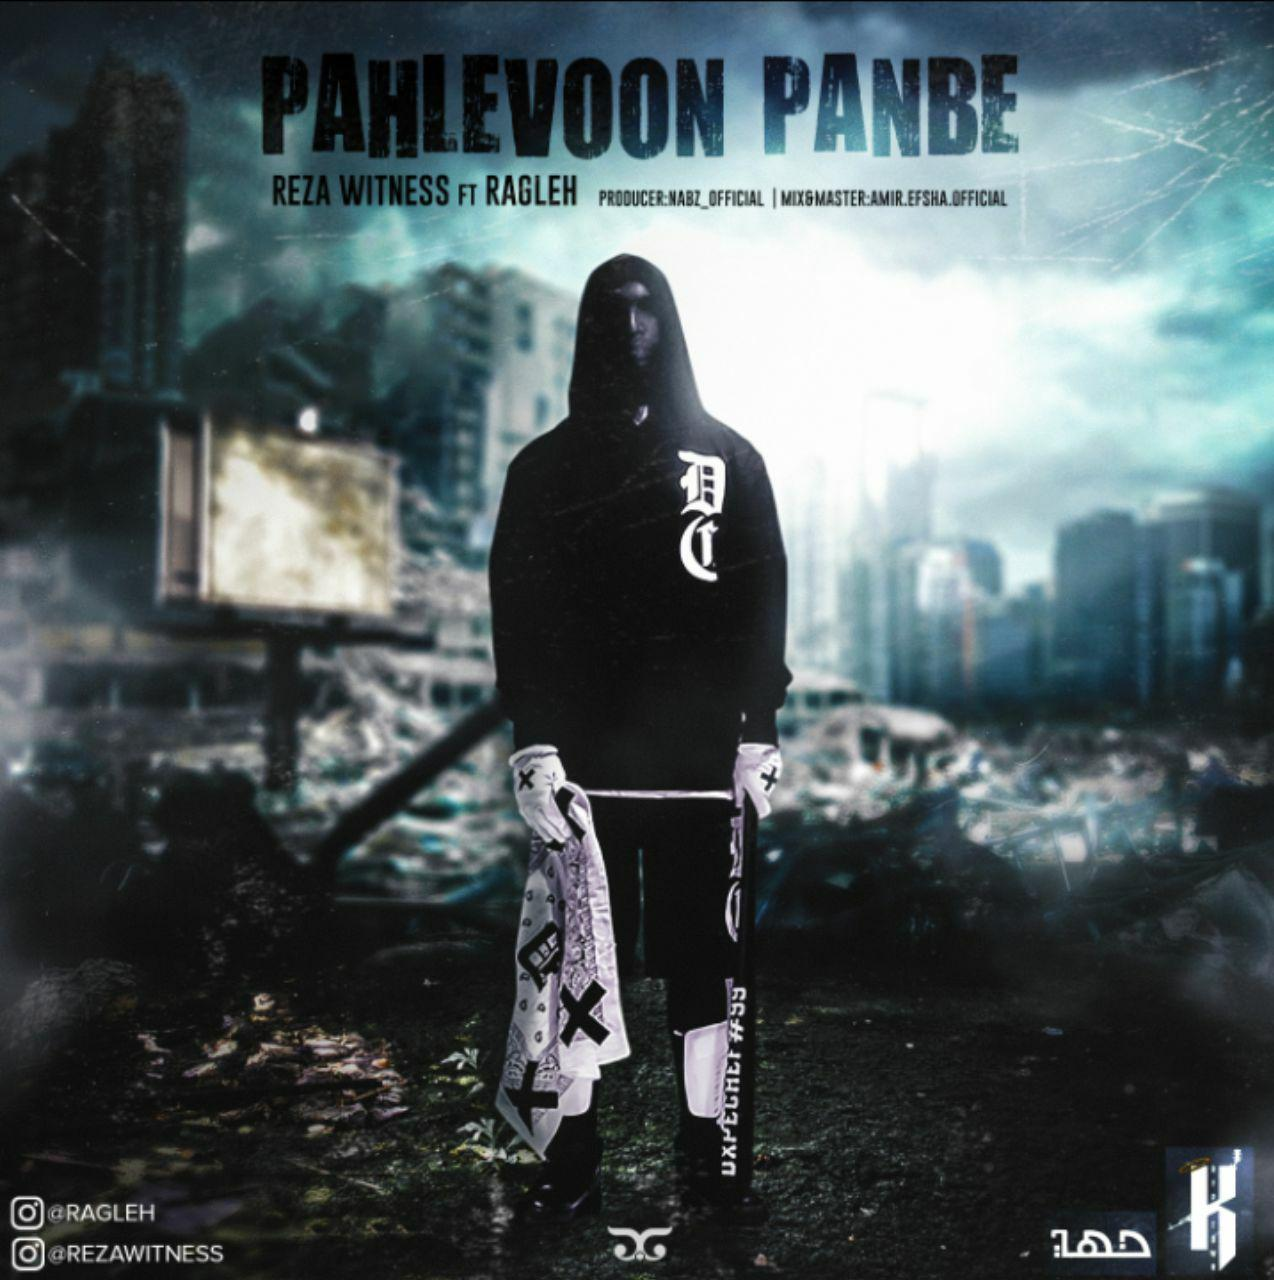 Witness Ft Ragleh - Pahlevon Panbe